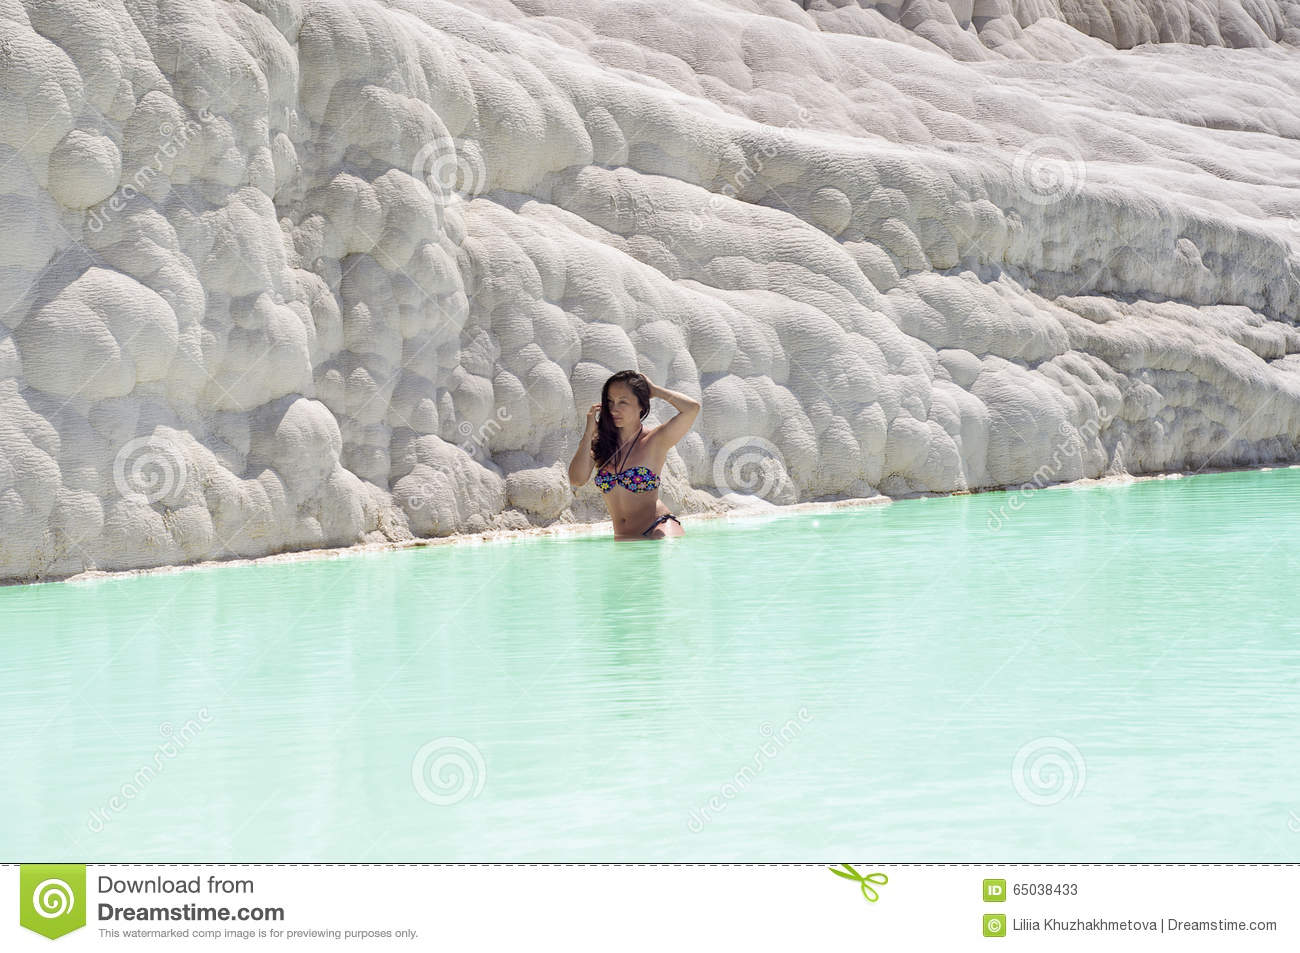 femme s 39 asseyant dans la piscine de travertin dans pamukkale turquie photo stock image 65038433. Black Bedroom Furniture Sets. Home Design Ideas